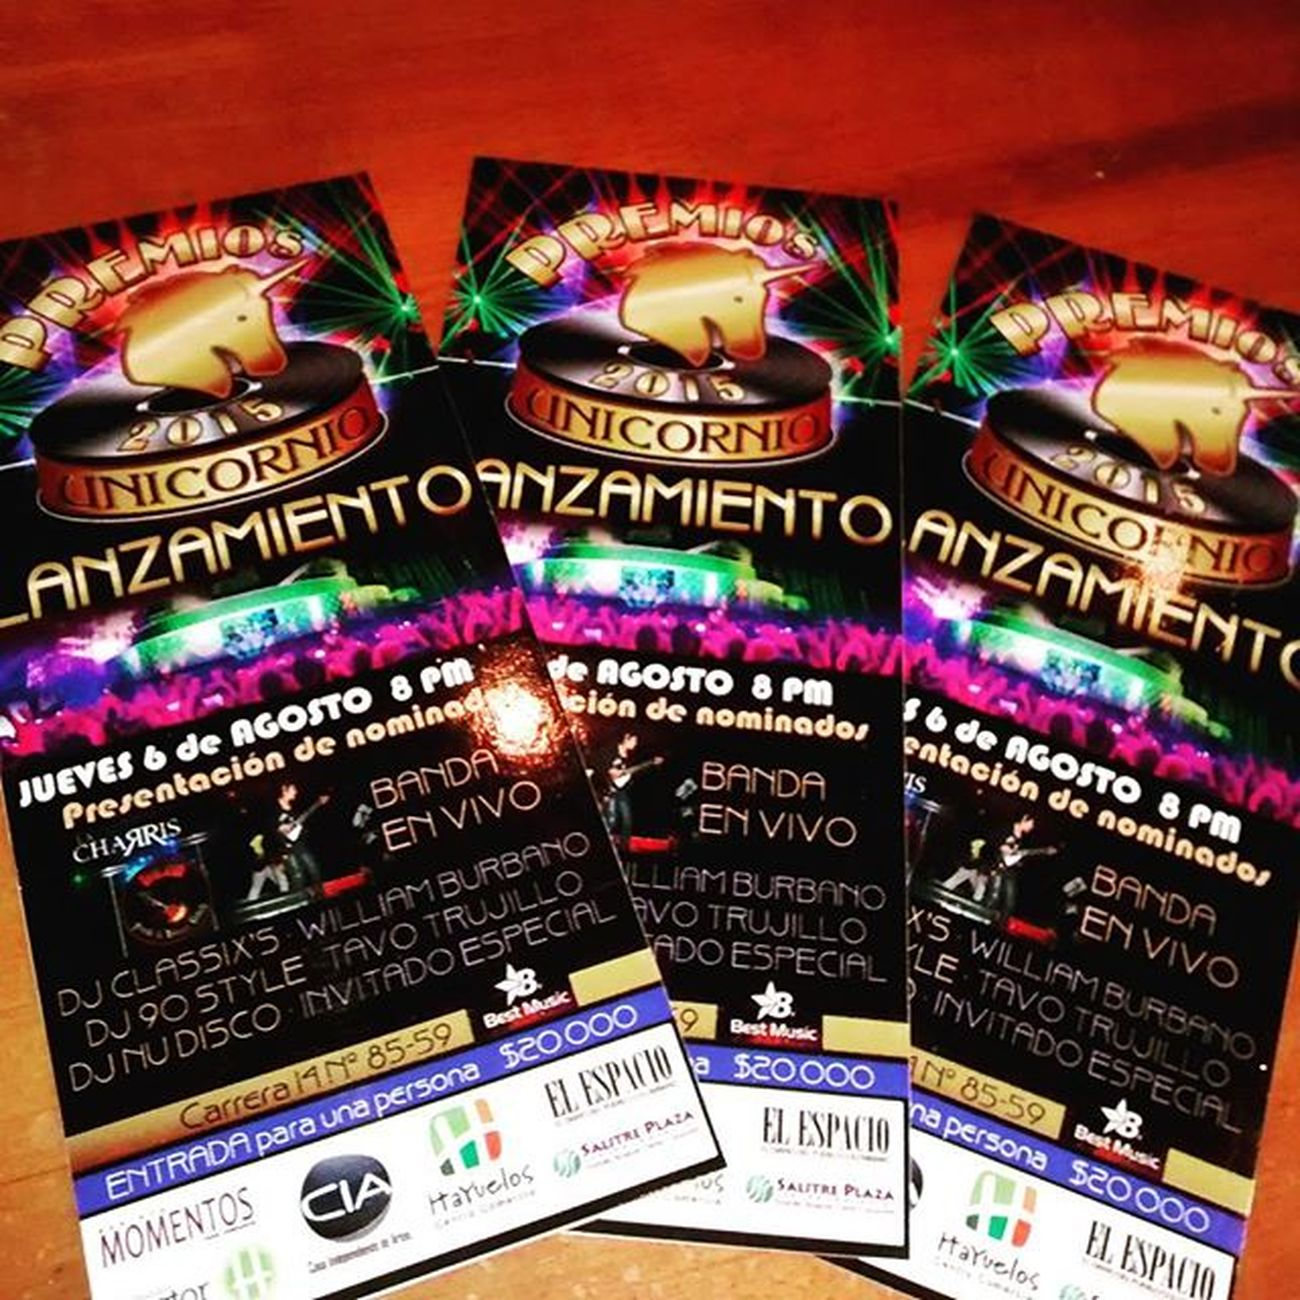 LanzamientoPremiosUnicornio2015 Discoparty DiscoParty2015 Awards Retrodjs Nominados Unicornio UnicornioDiscoParty OsejosBrothers